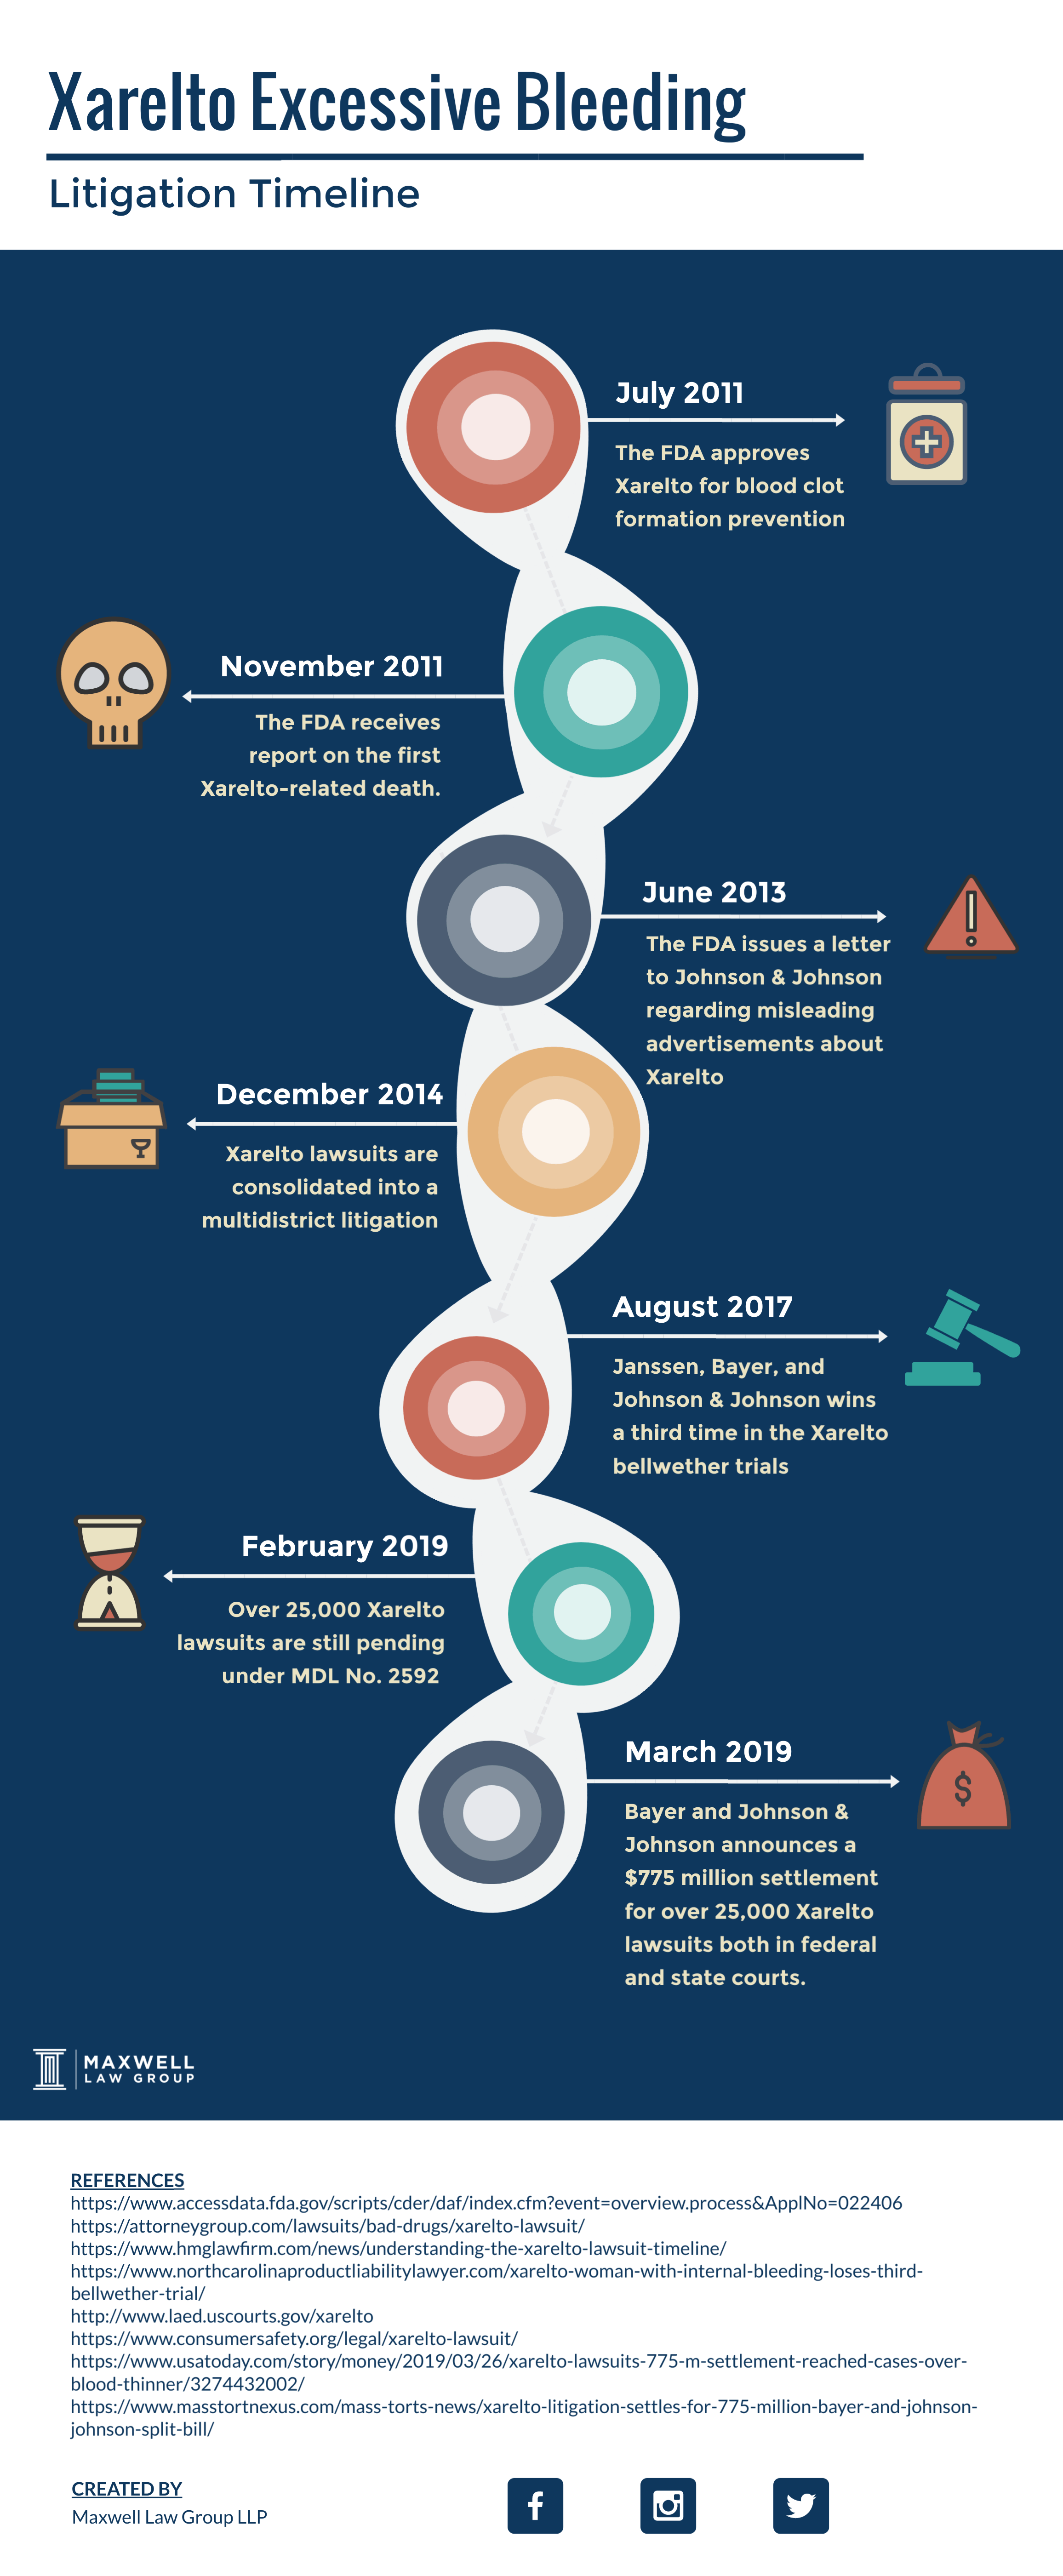 xarelto litigation timeline